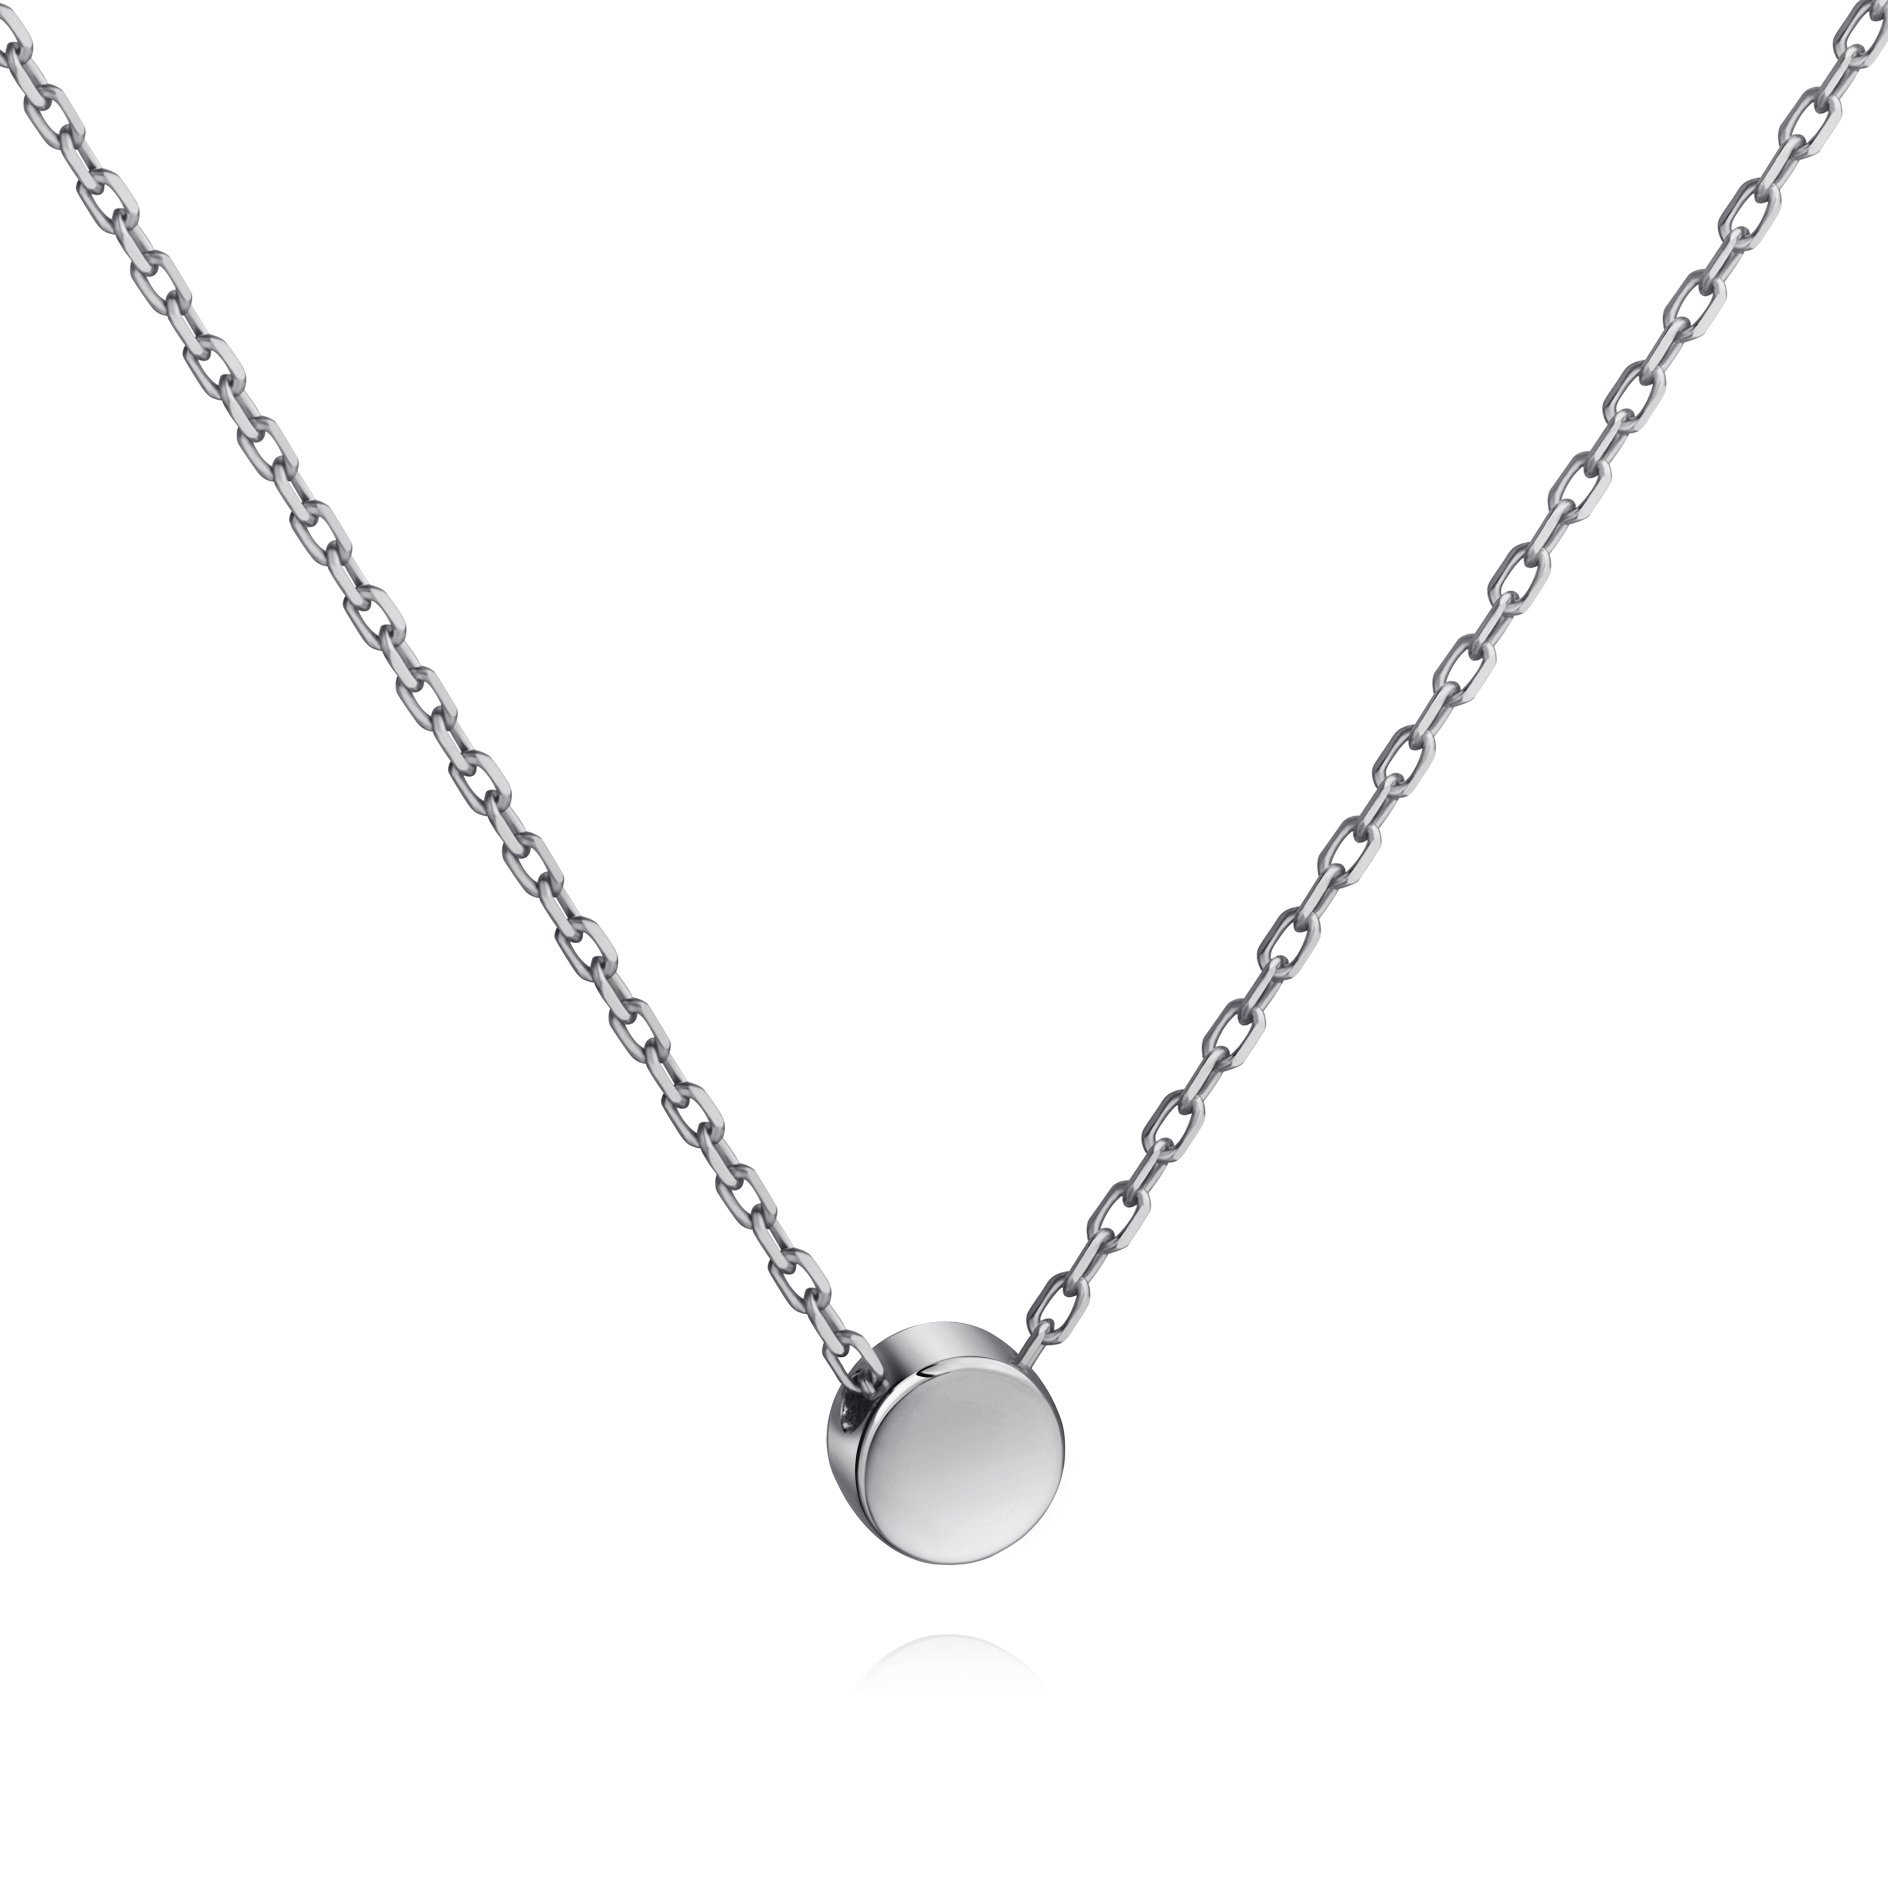 Meow Star Tiny Dot Necklace Sterling Silver Floating Disc Circle Pendant Minimalist Necklace (silver)